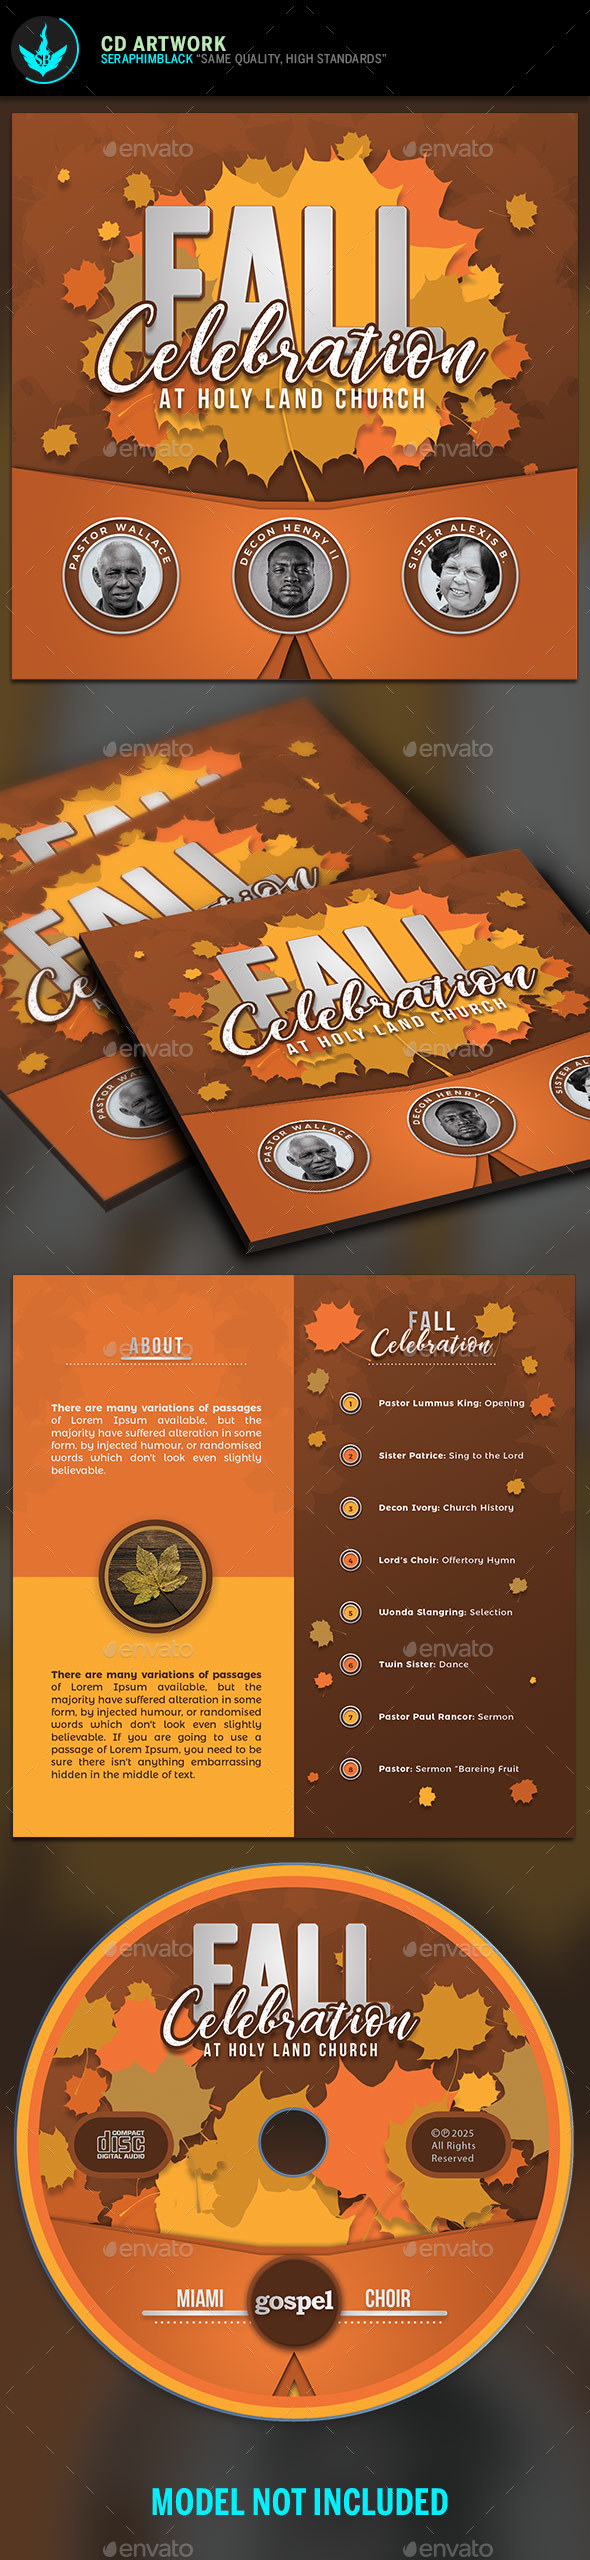 Fall Celebration CD Artwork Template - CD & DVD Artwork Print Templates